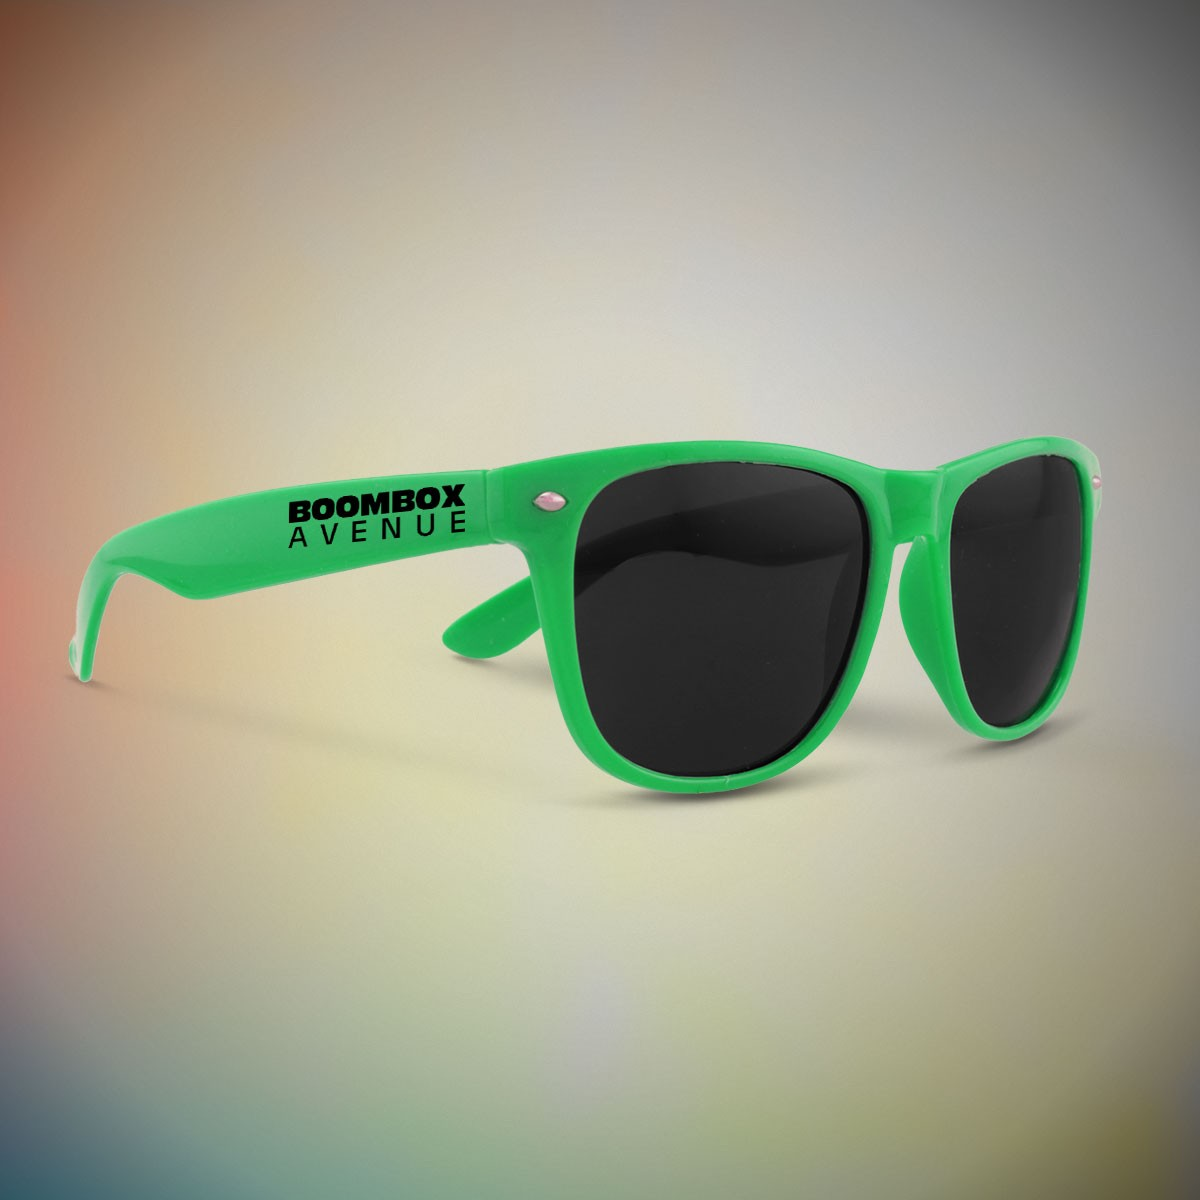 GREEN FRAME RETRO SUNGLASSES